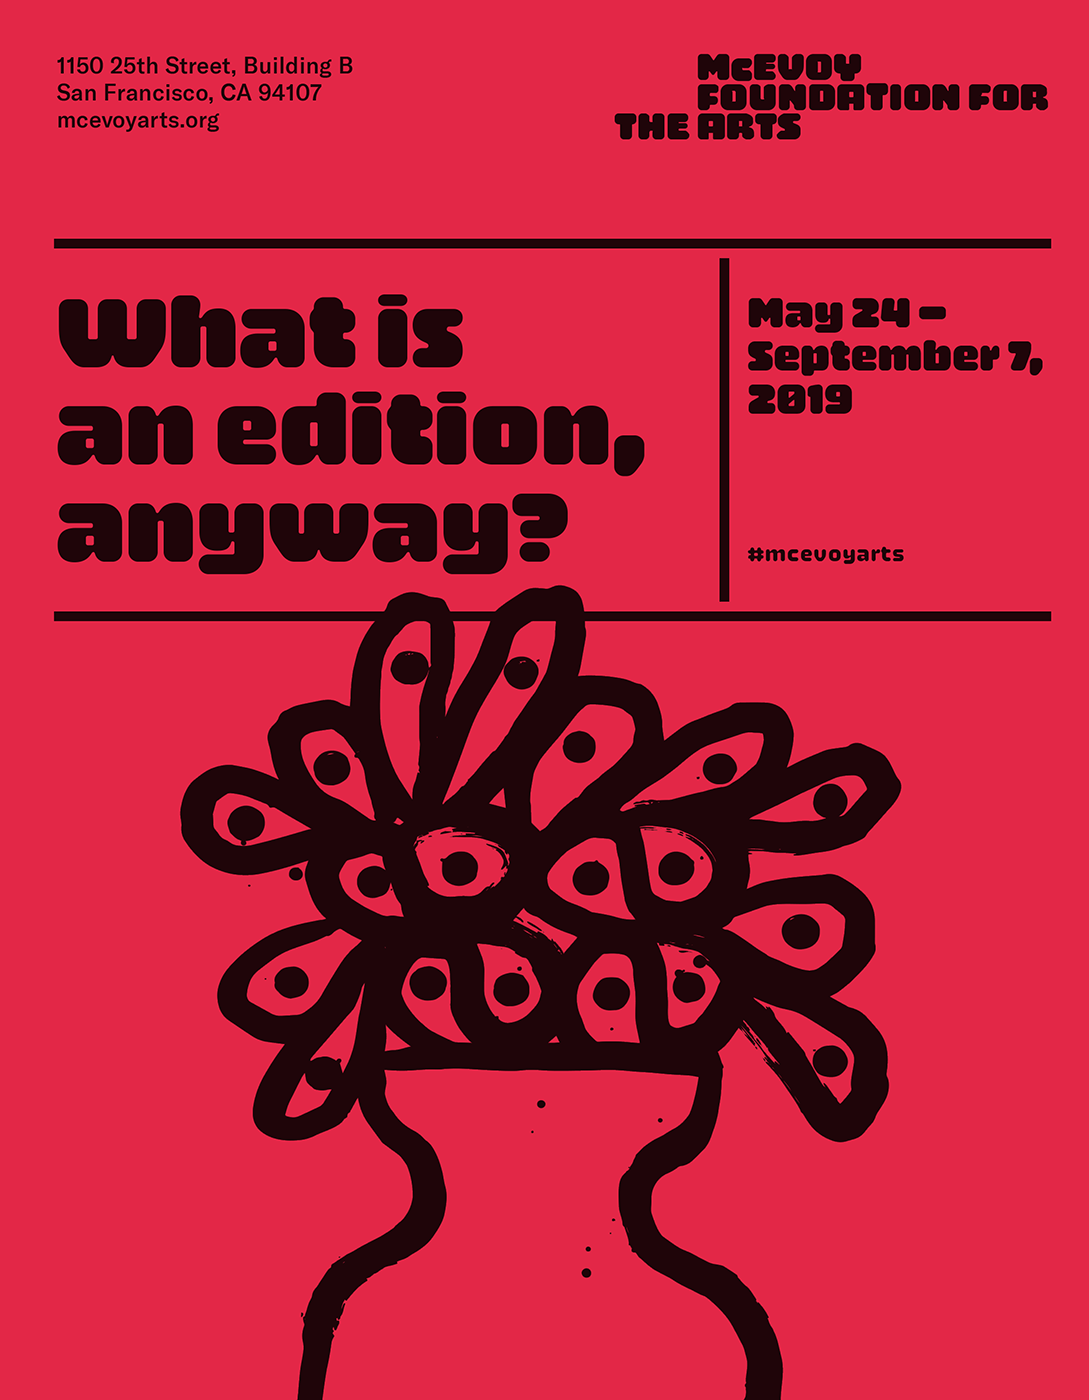 At The McEvoy Foundation For The Arts: What Is An Edition, Anyway?